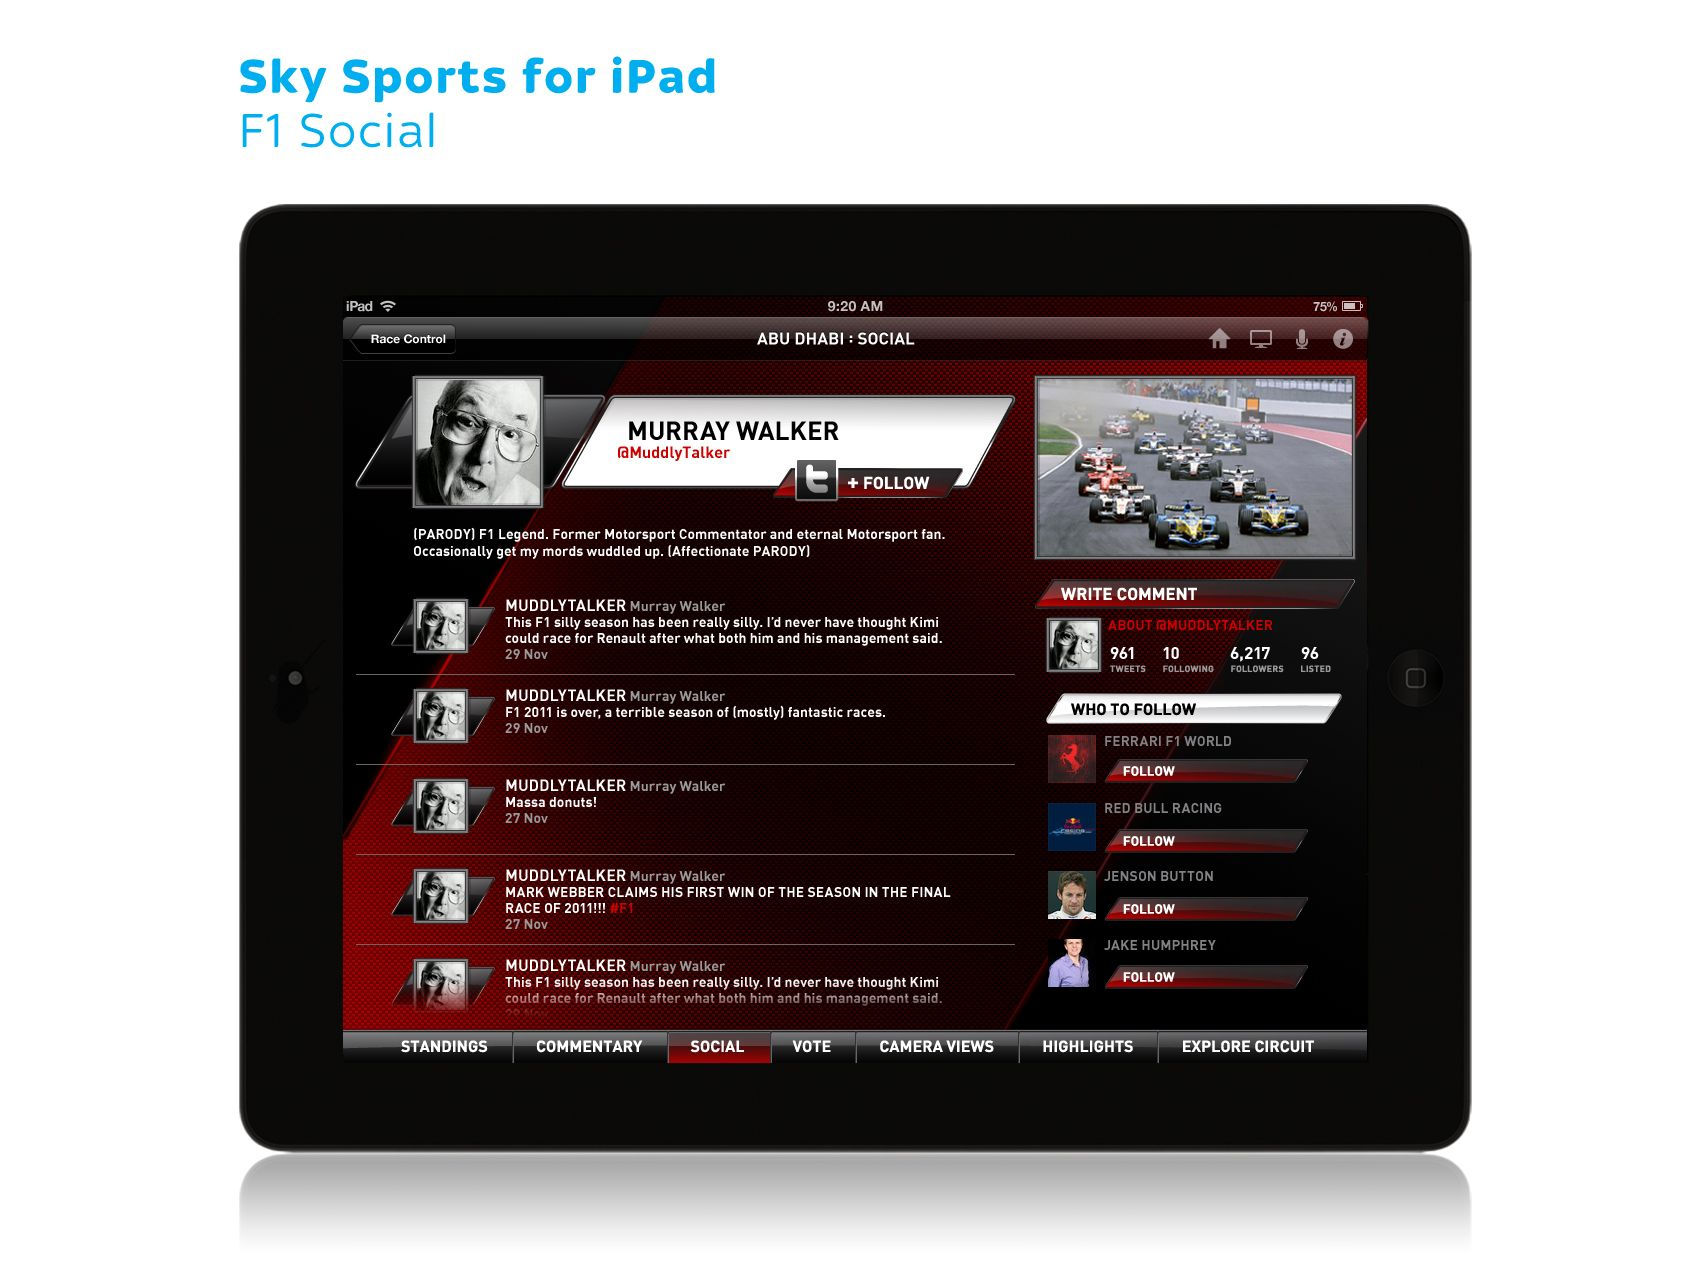 Sky Sports for iPad F1 02 (With images) 10 things, Ipad